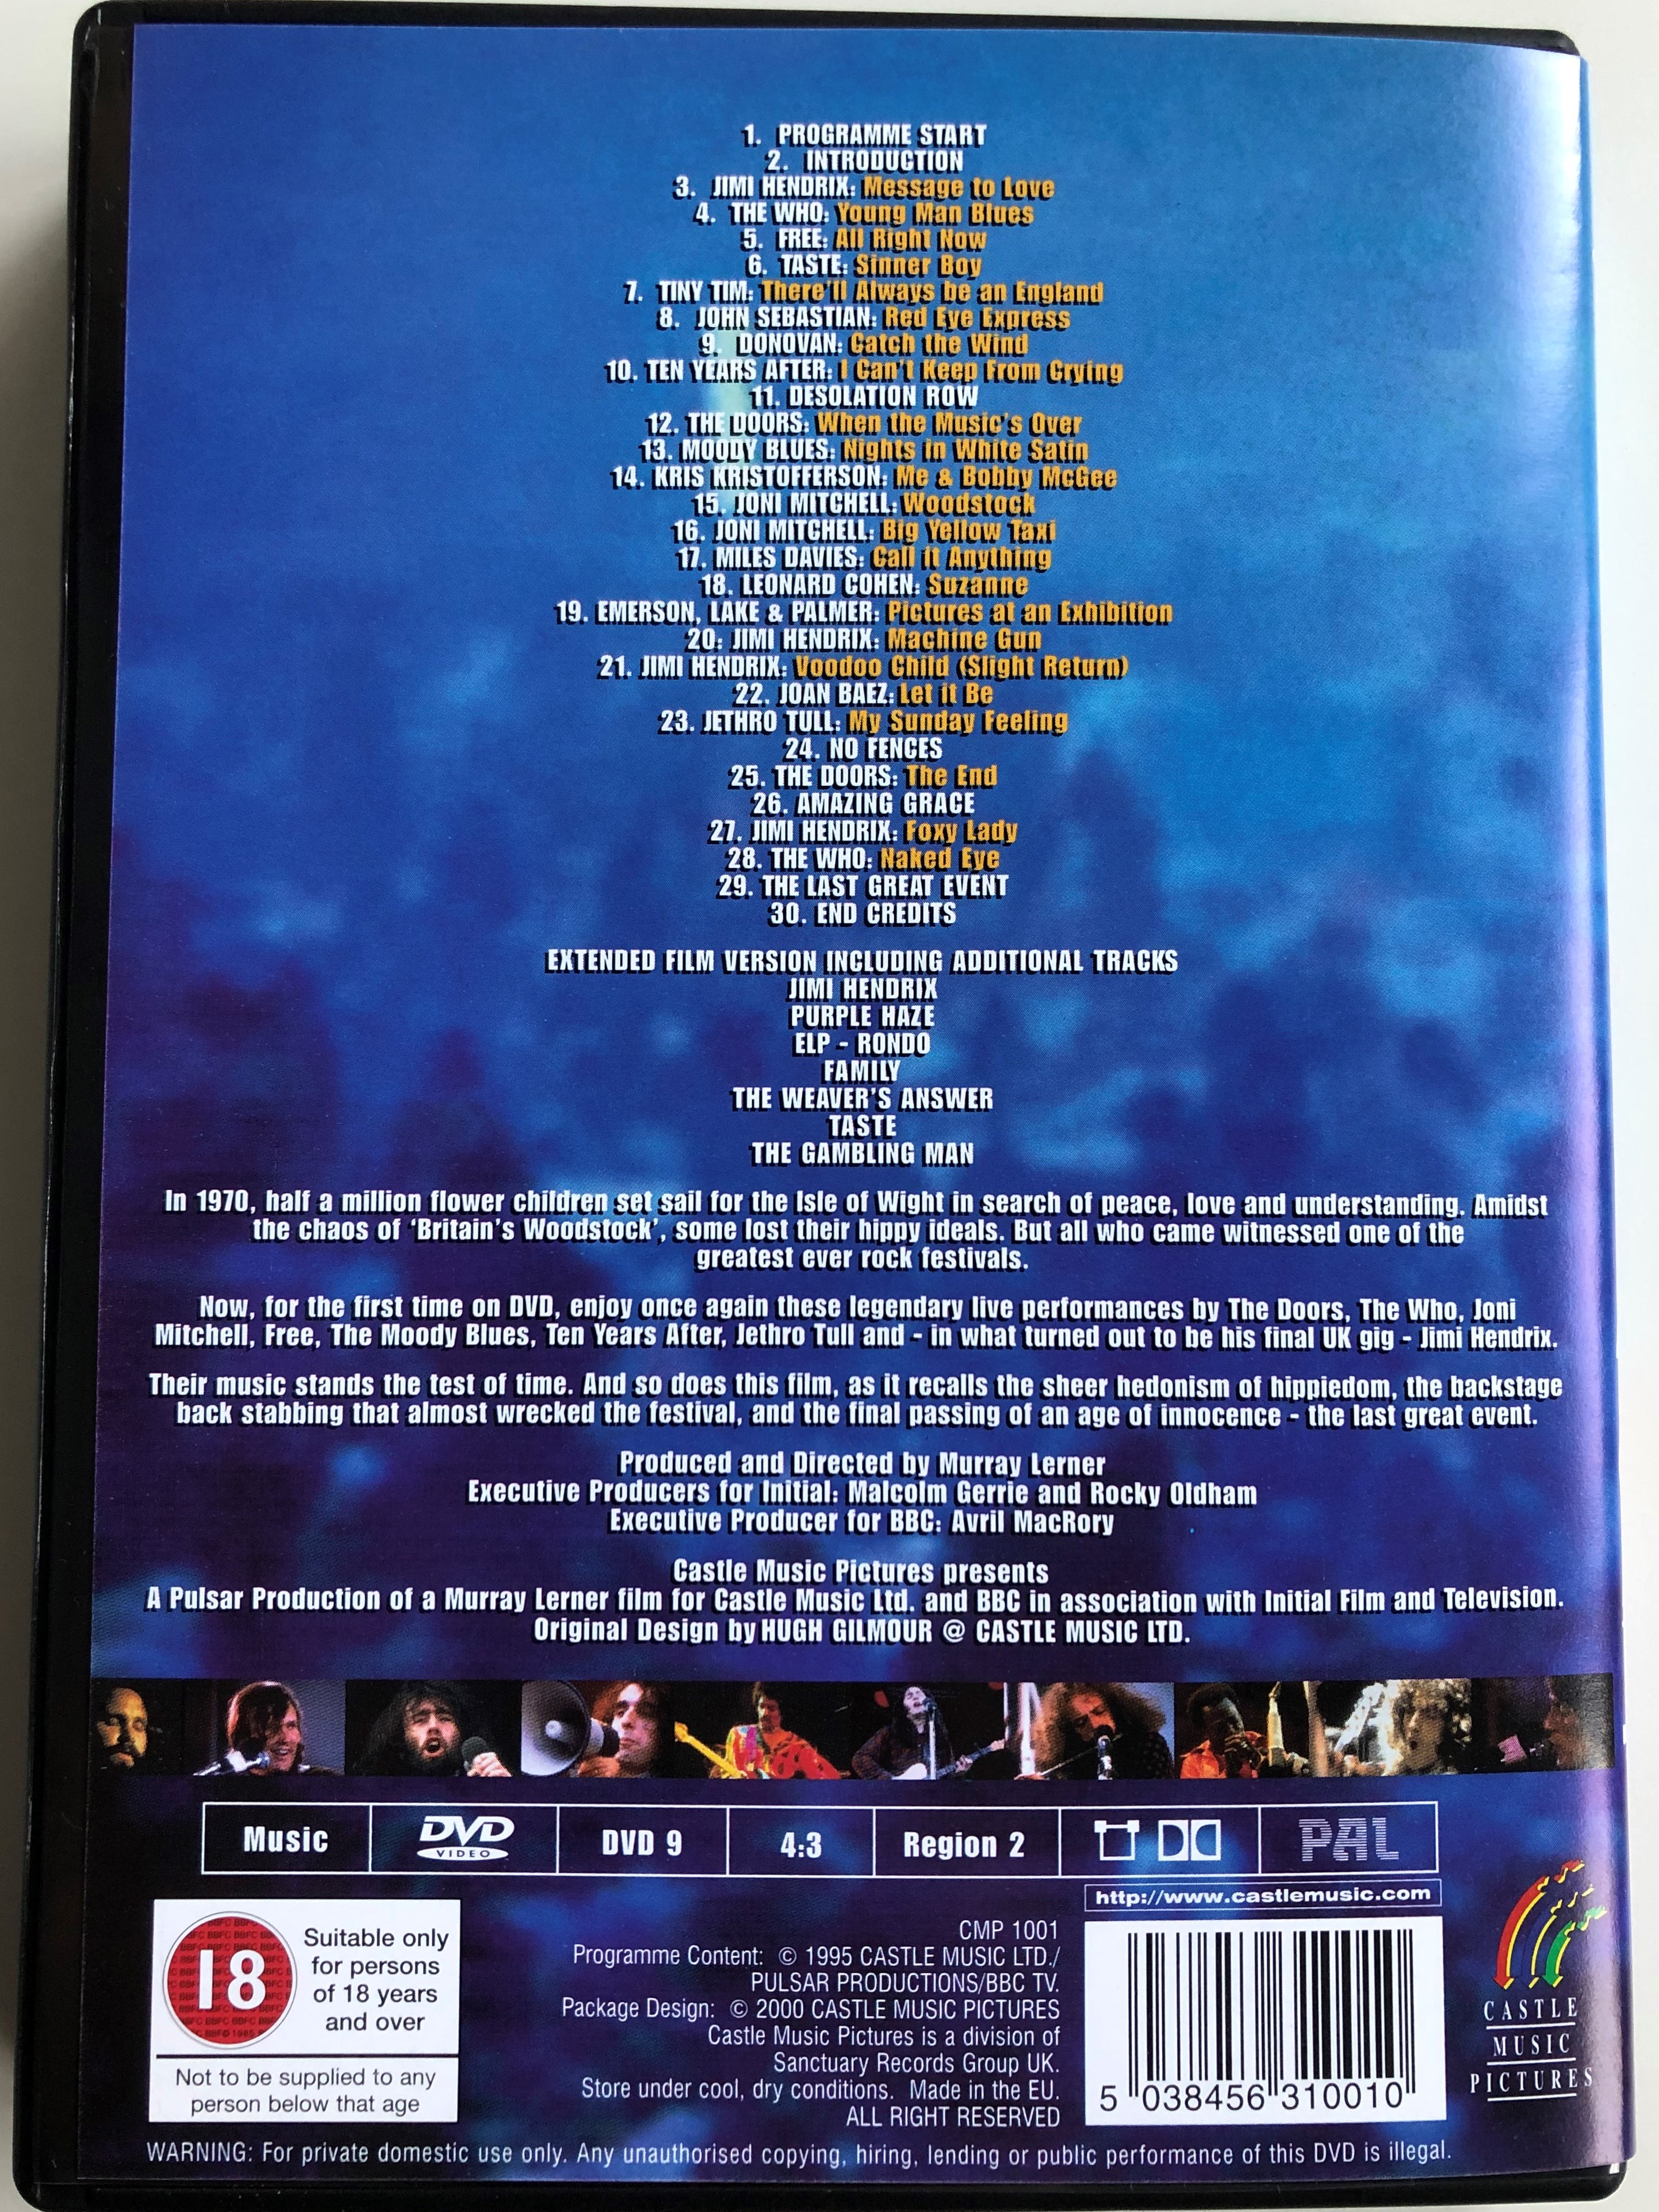 message-to-love-the-isle-of-wight-festival-the-movie-dvd-1995-2.jpg